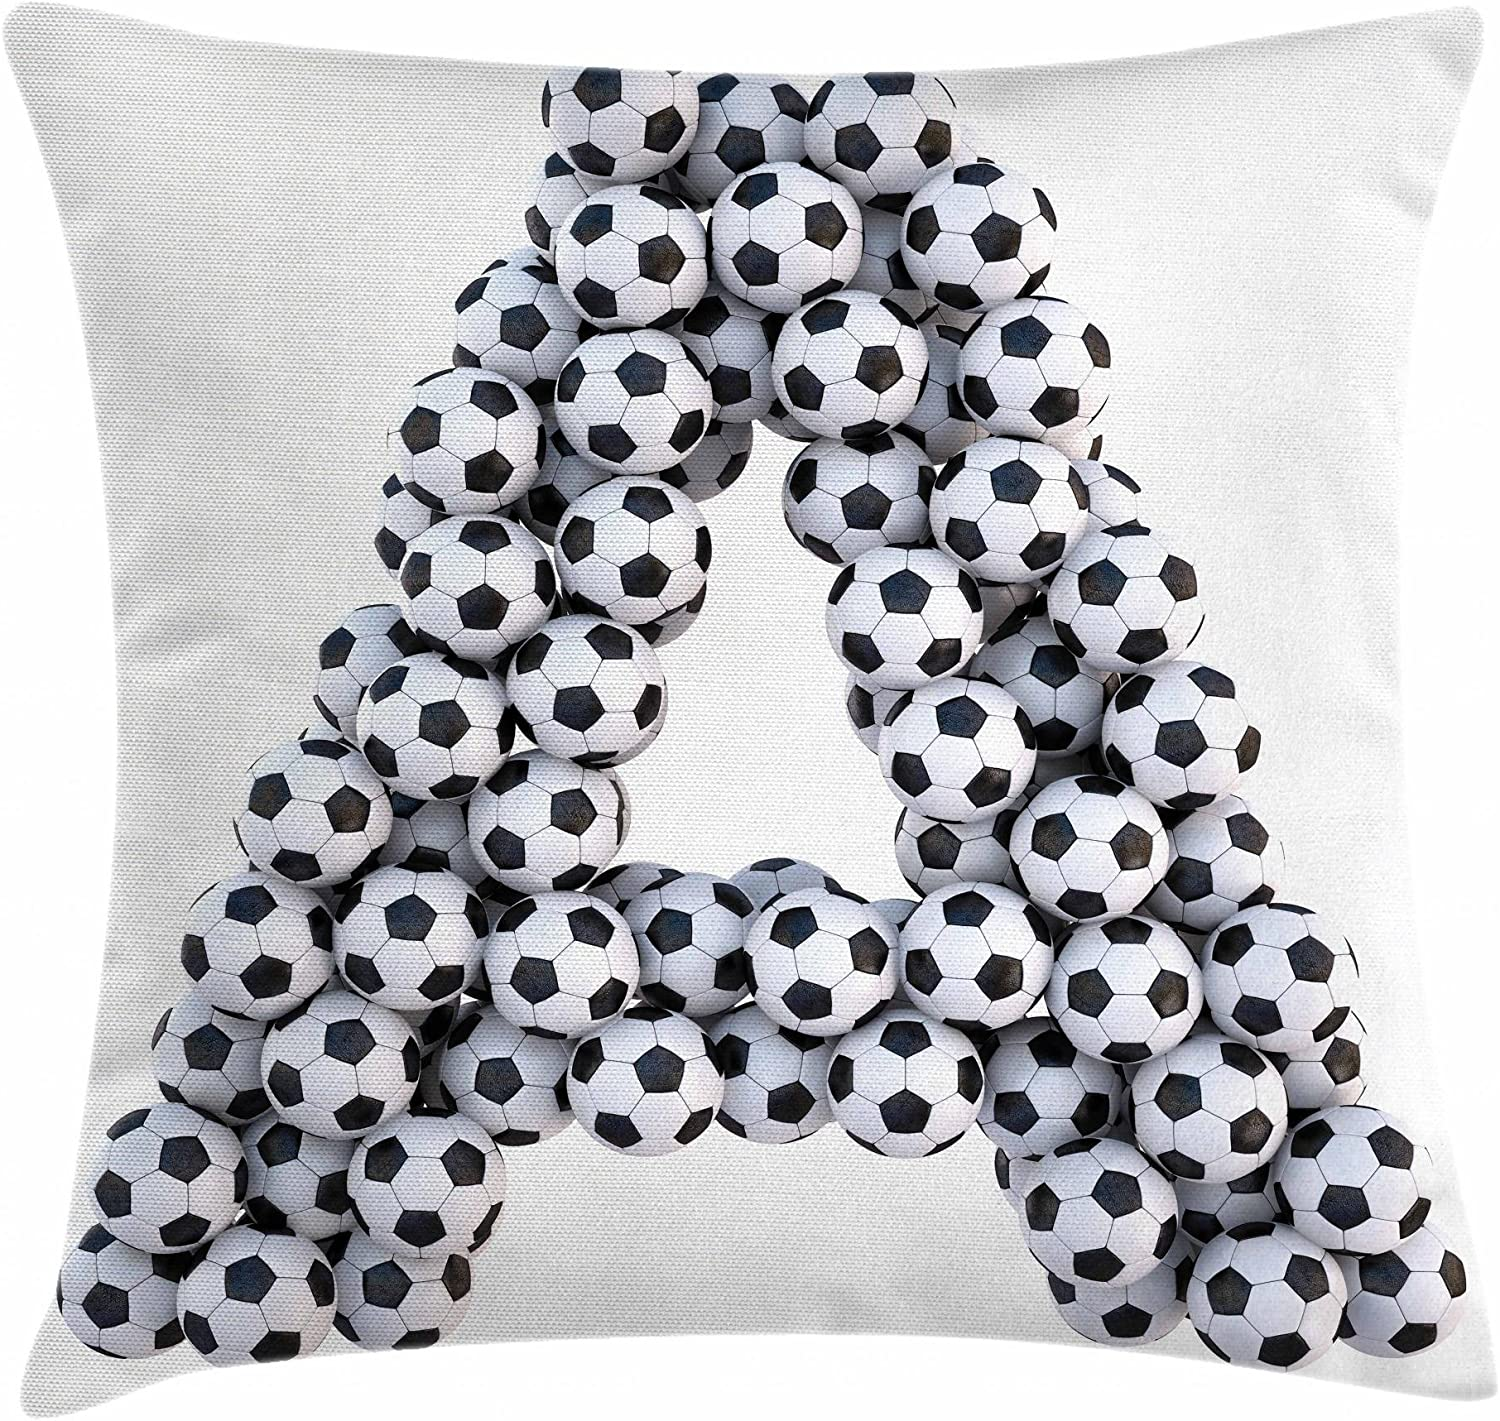 "Ambesonne Letter a Throw Pillow Cushion Cover, Realistic Soccer Balls in Form of Capital Sports Play League Competition Theme, Decorative Square Accent Pillow Case, 18"" X 18"", Black White"